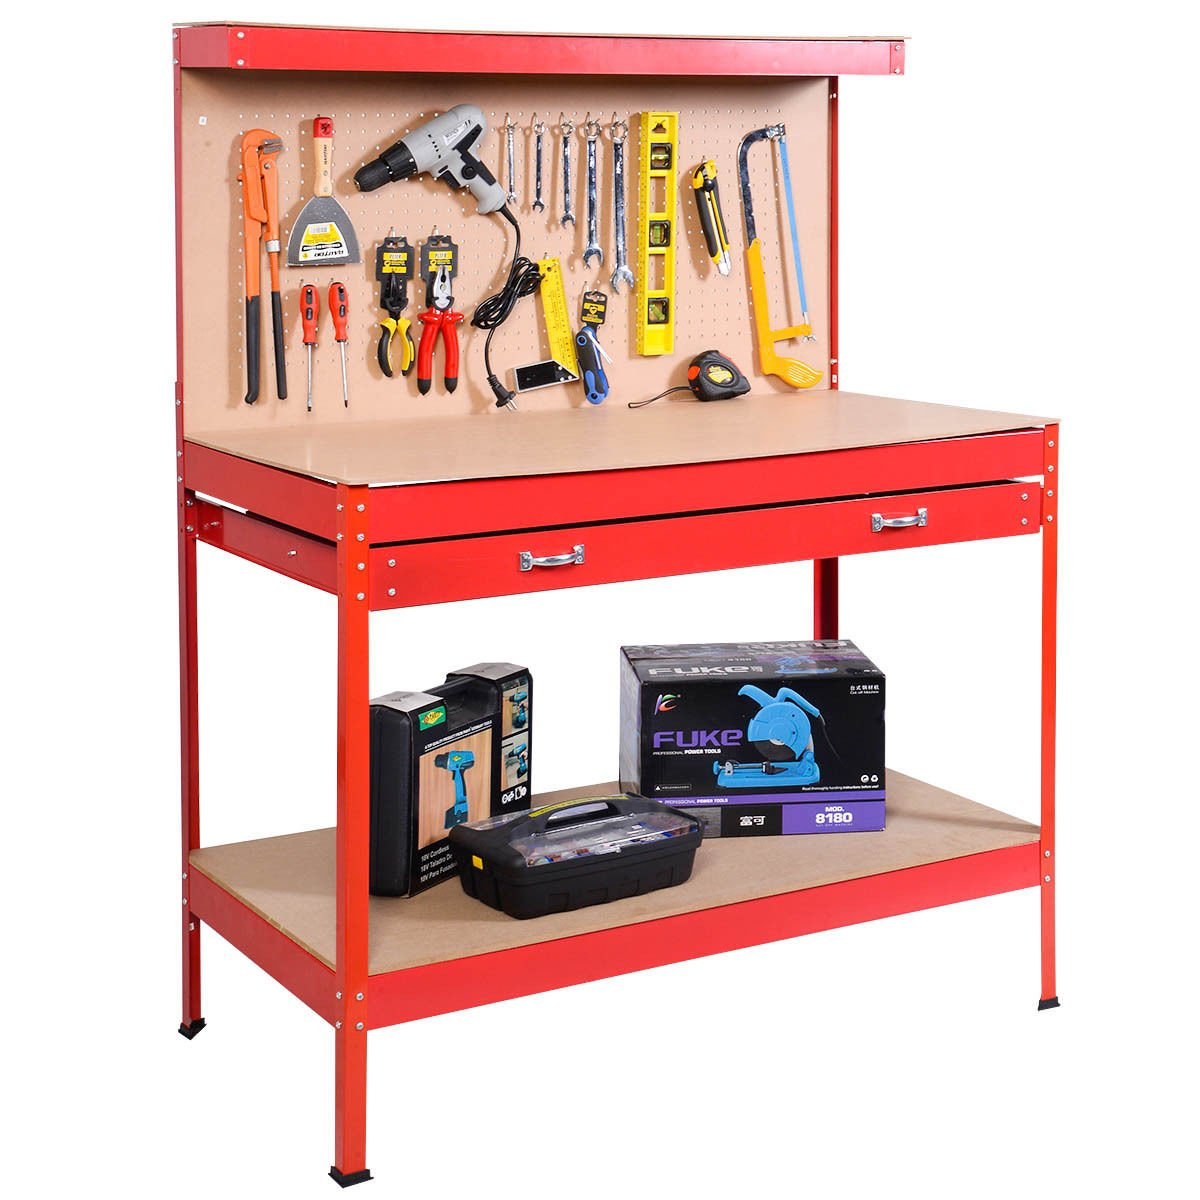 Red Work Bench Tool Storage Steel Tool Workshop Table W/ Drawer and Peg Board